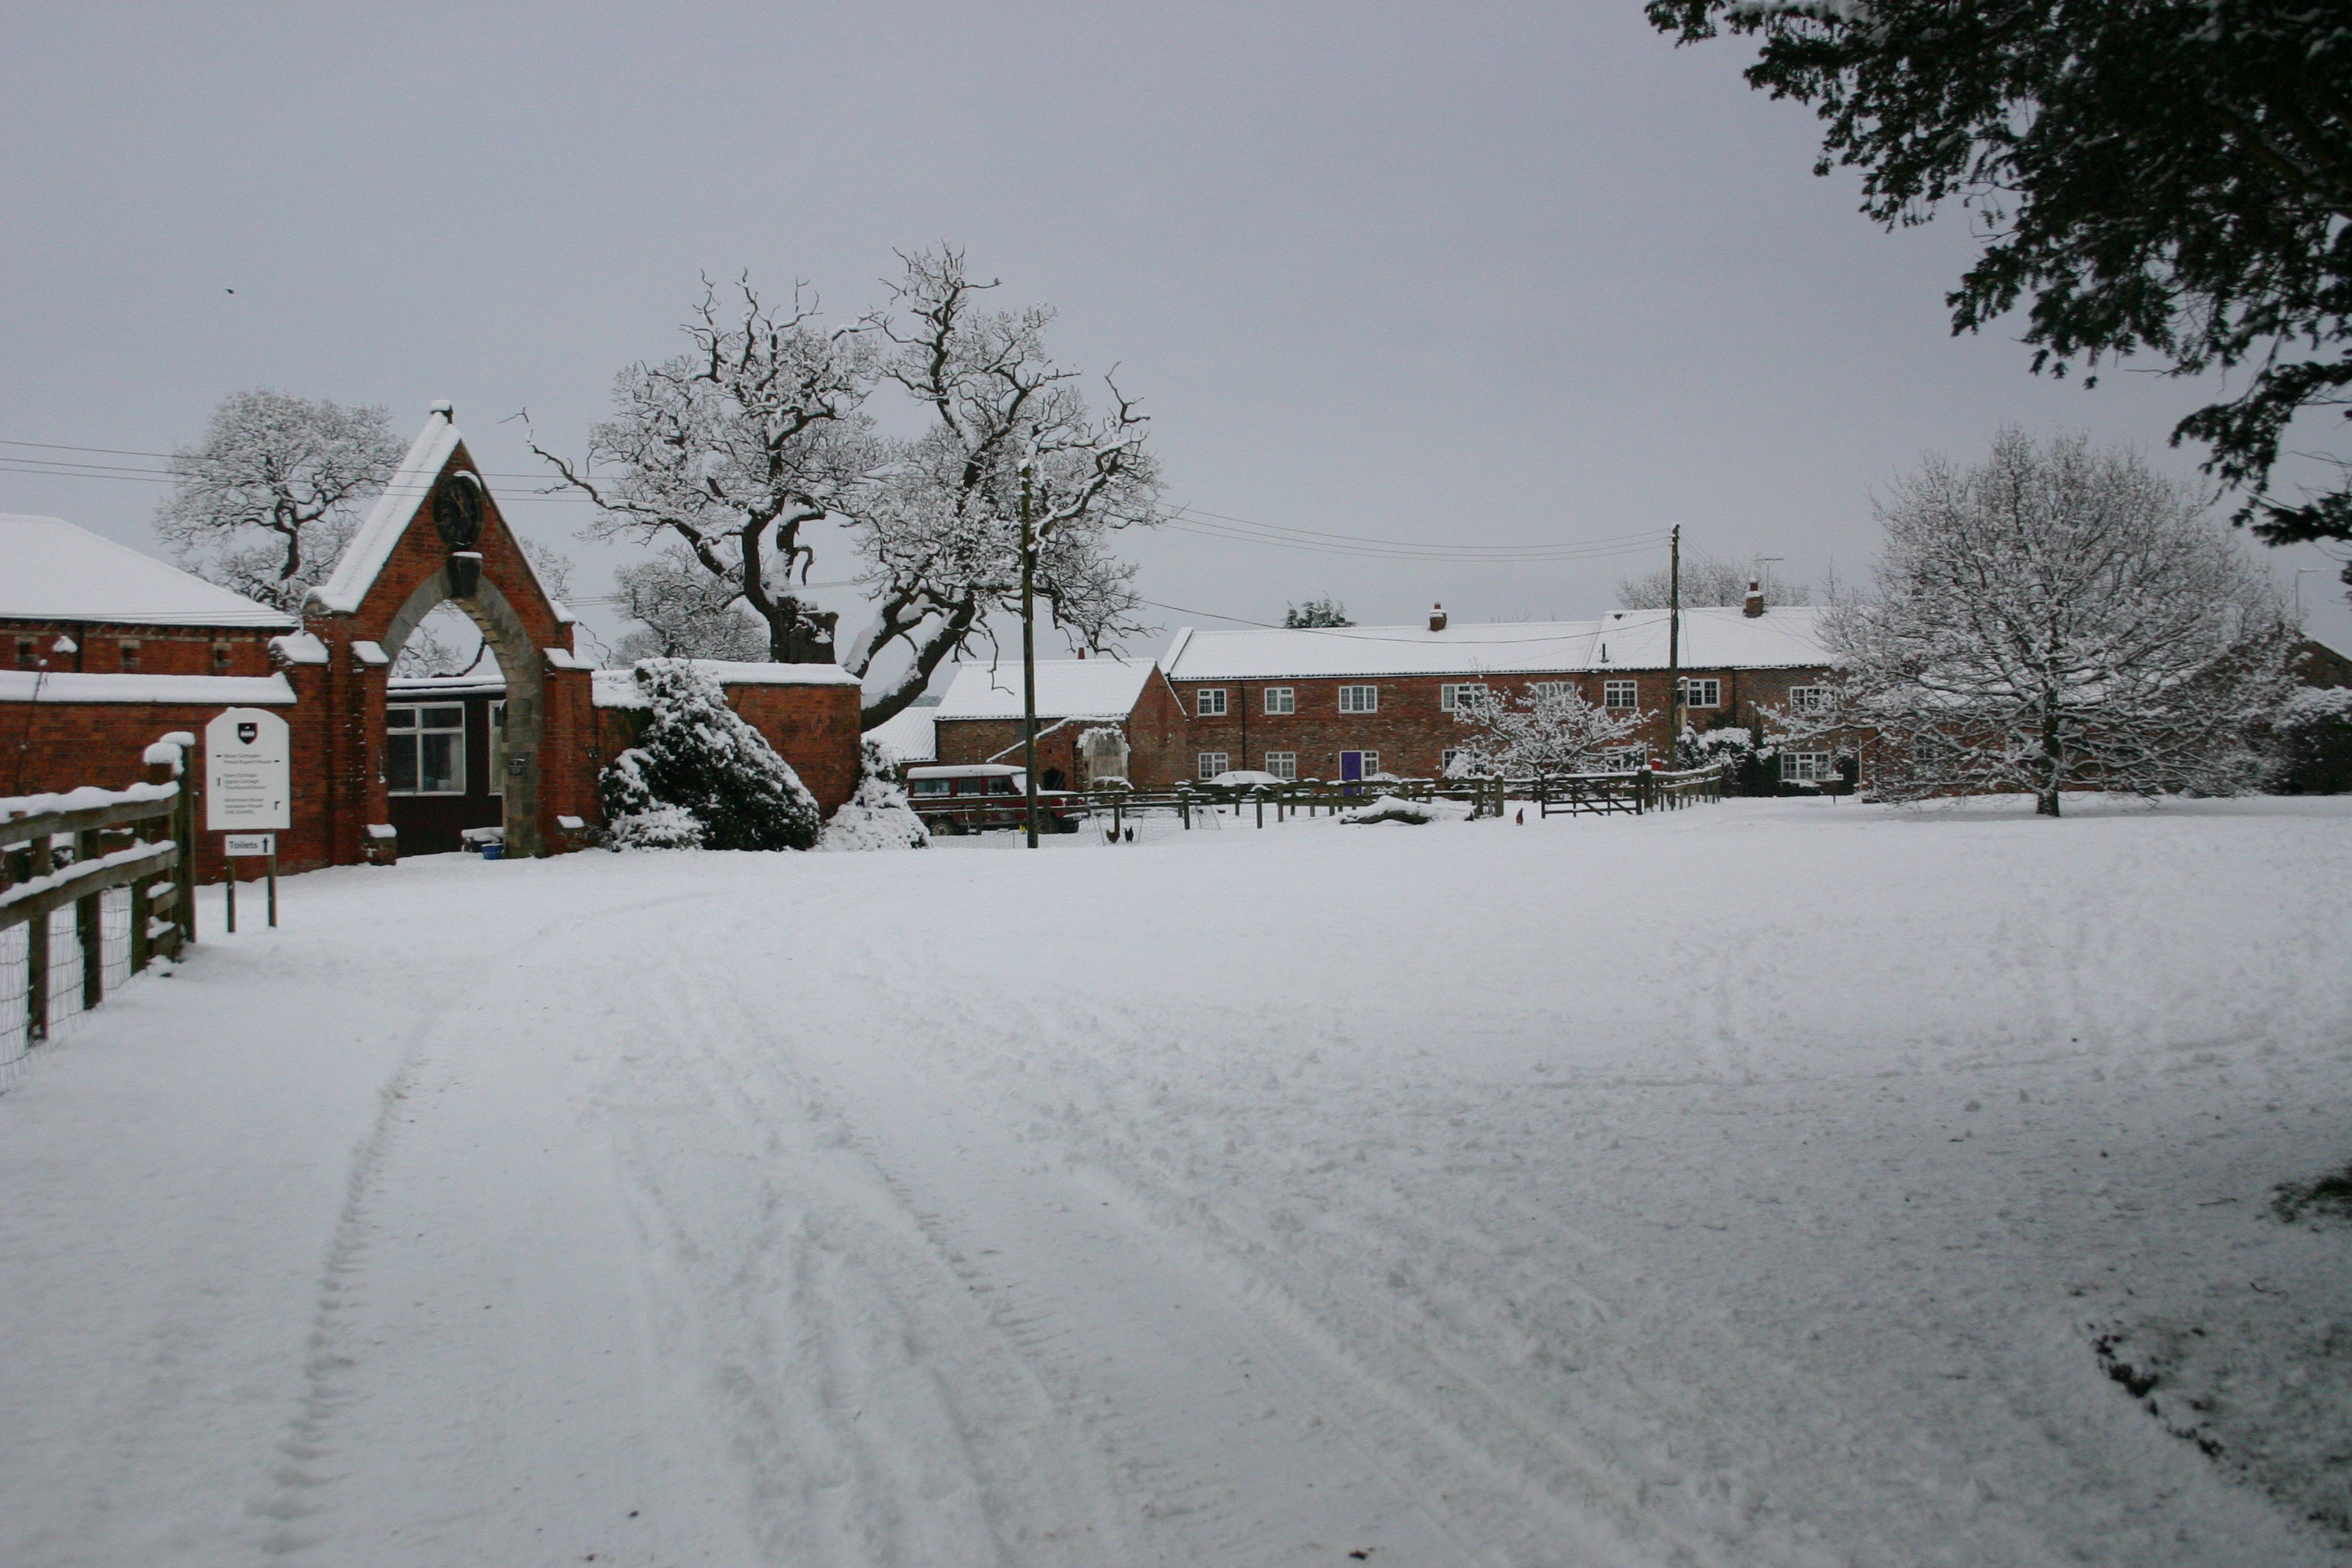 The Oval in snow